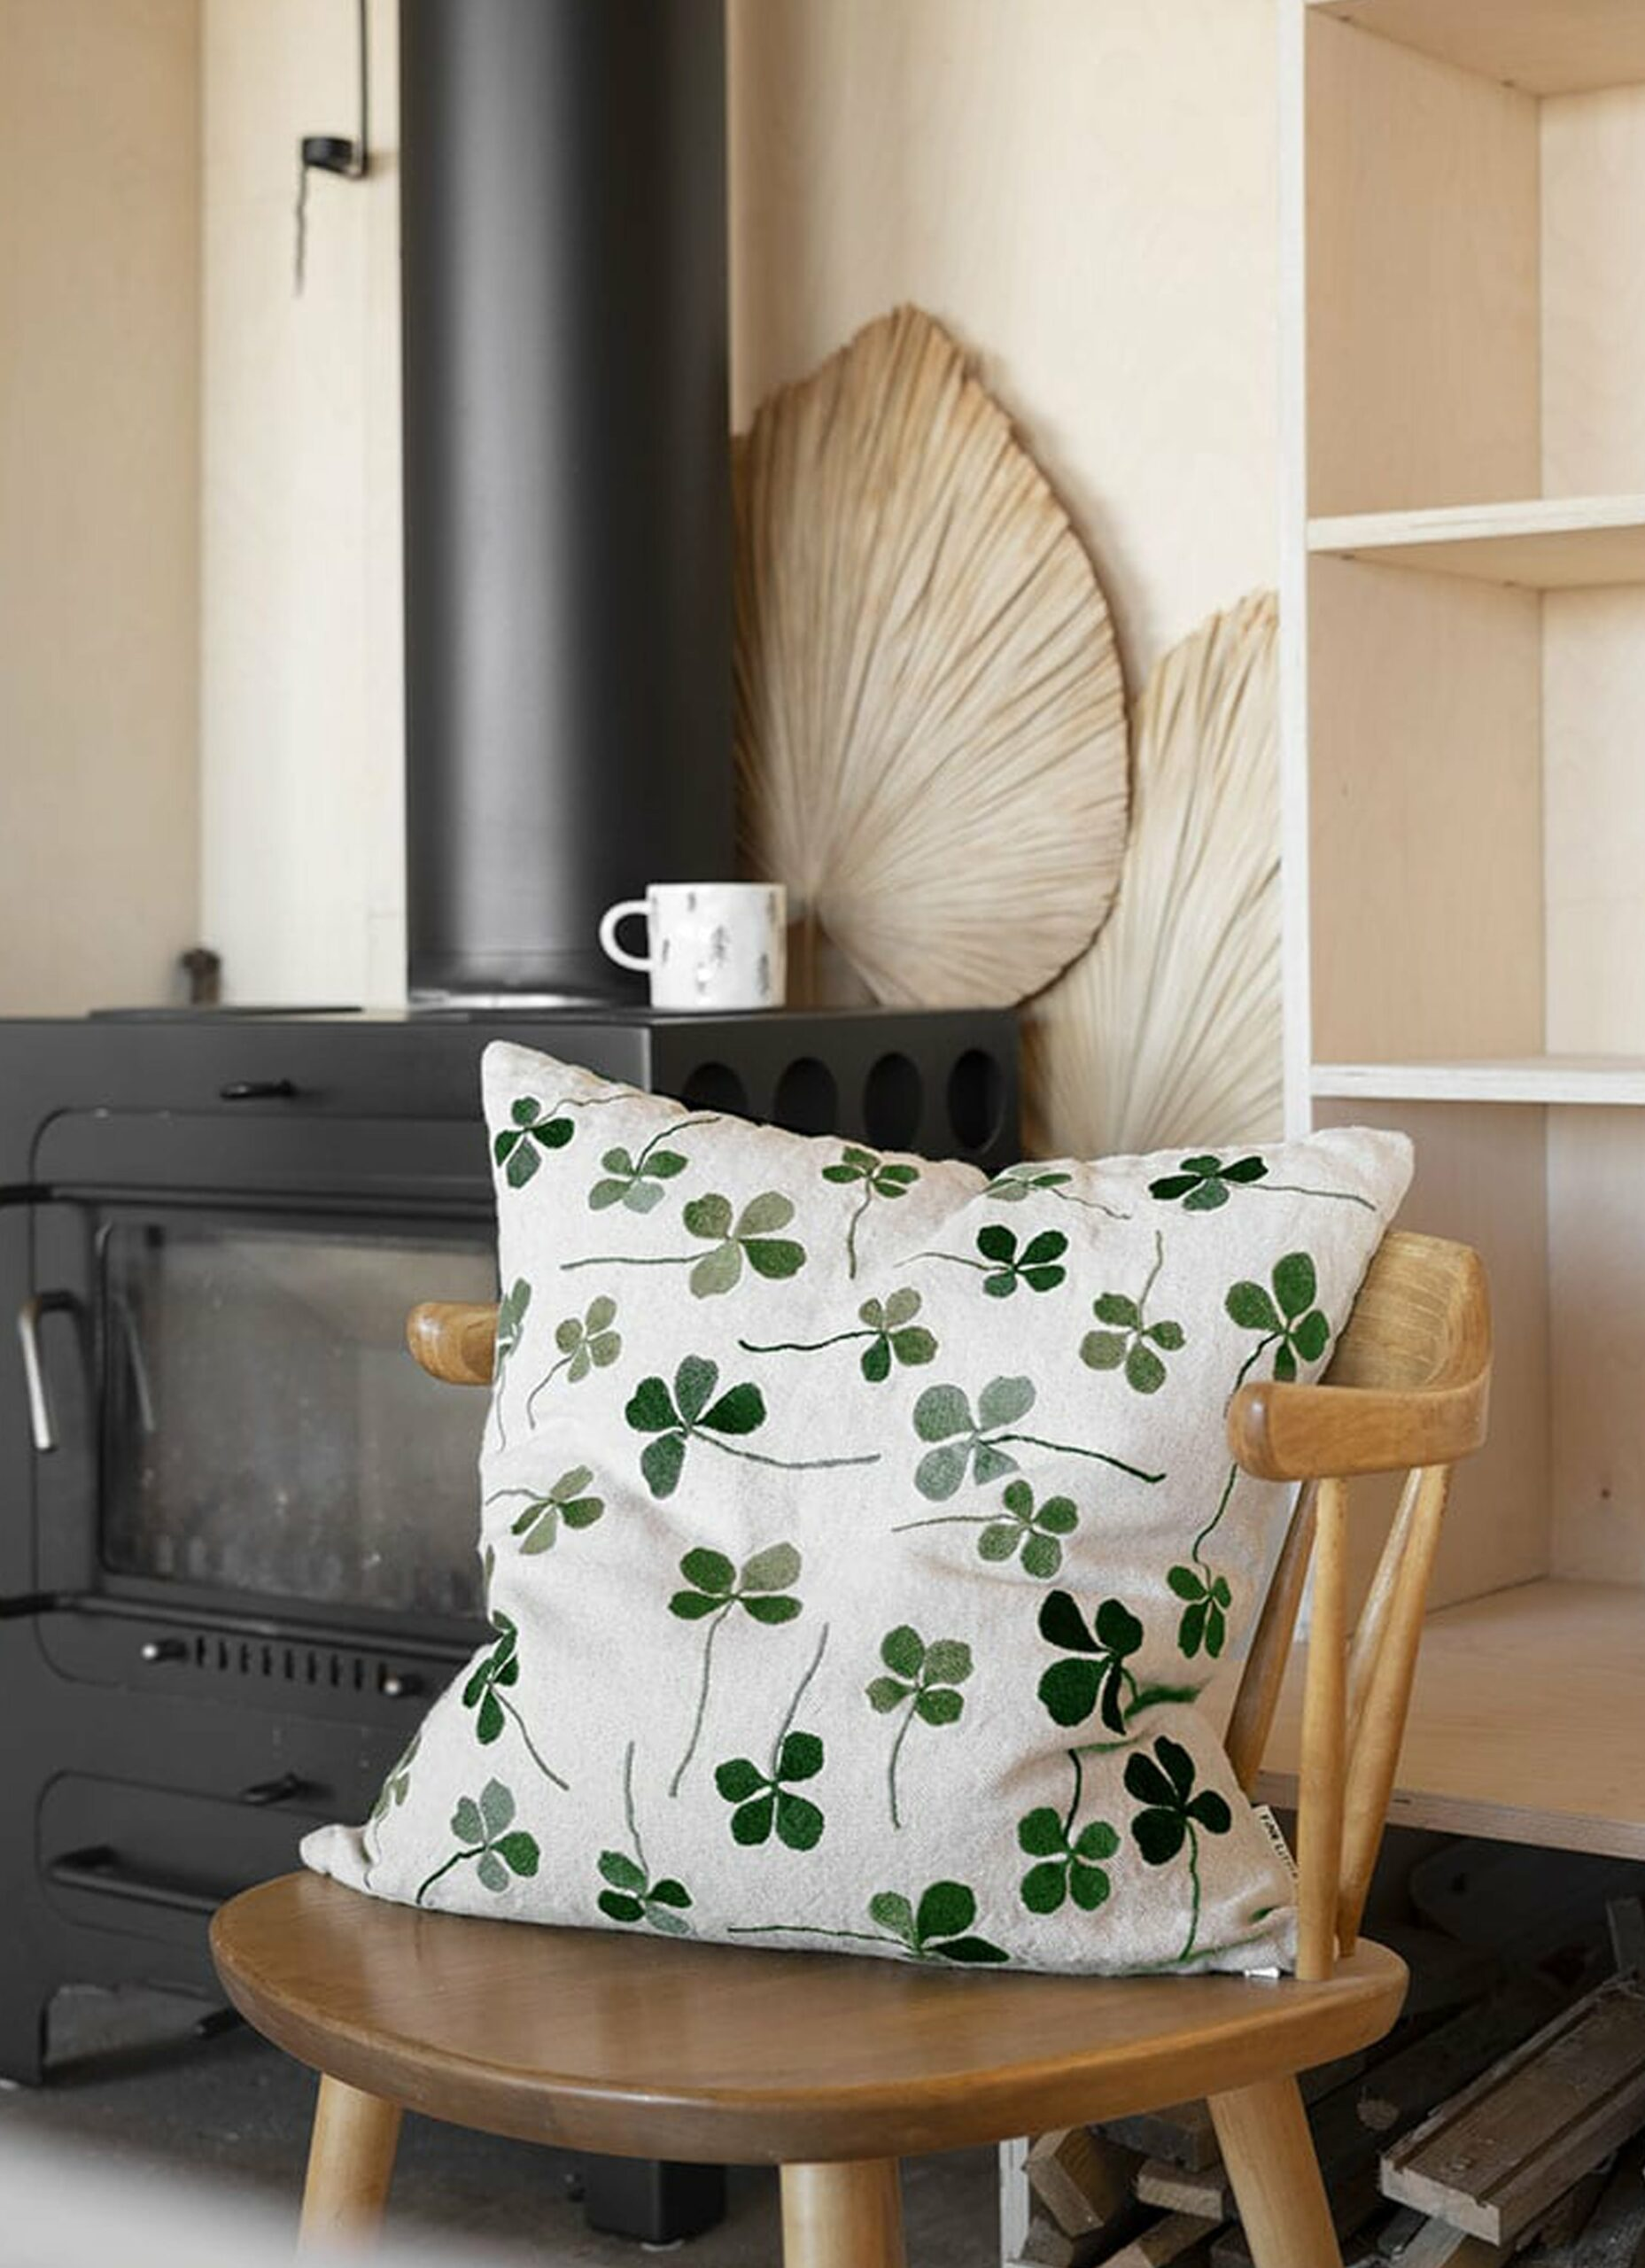 Fine Little Day - Clover - Embroidered Cushion - Linen and Cotton